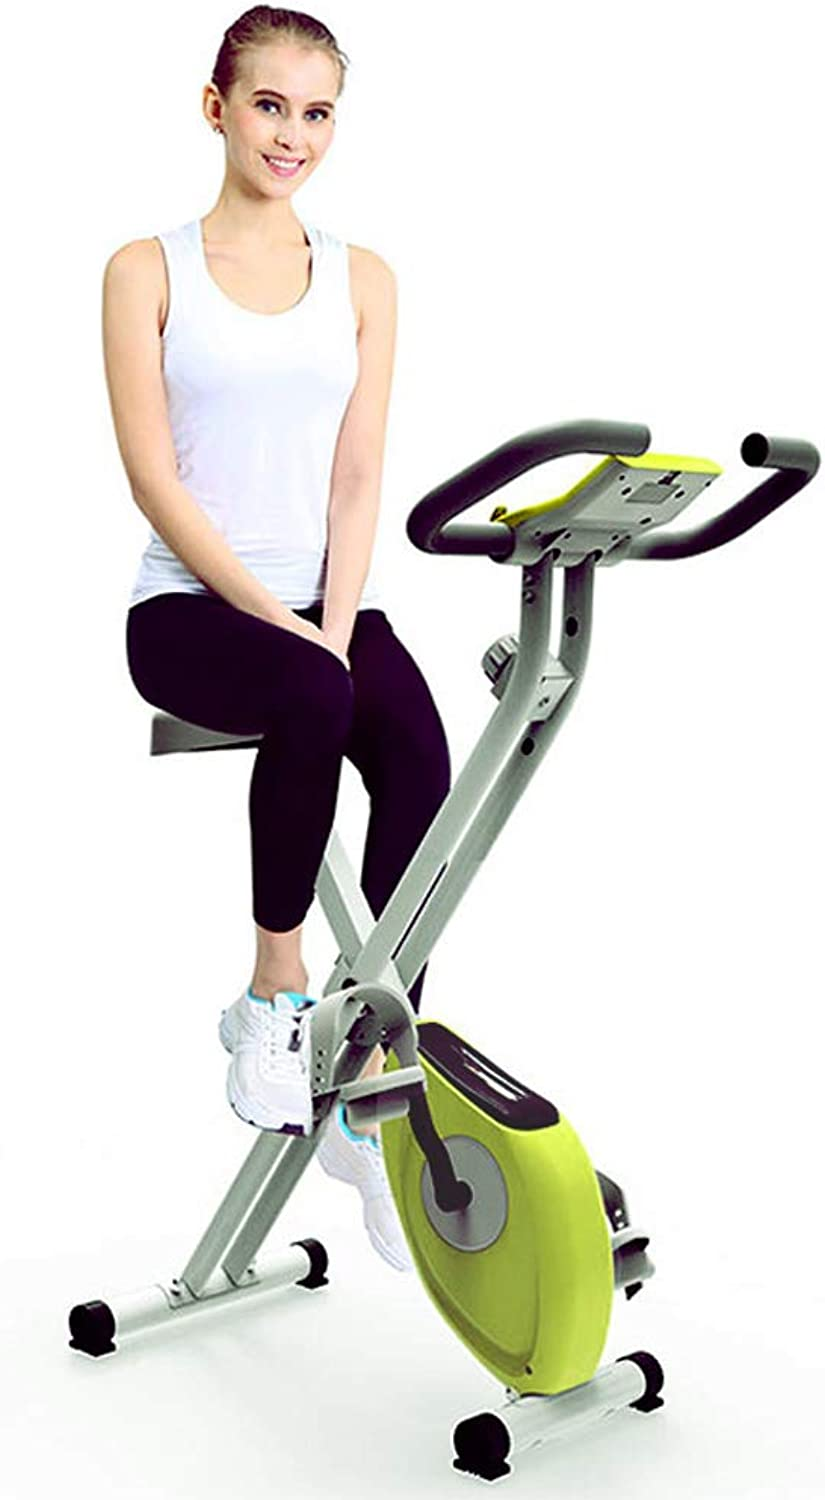 Magnetron X Exercise Bike,Foldable+8Speed Resistance Adjustment+Mobile Phone Tablet Bracket+MultiFunction Led Electronic Watch,Mute,NonSlip Feet,Portable and Mobile